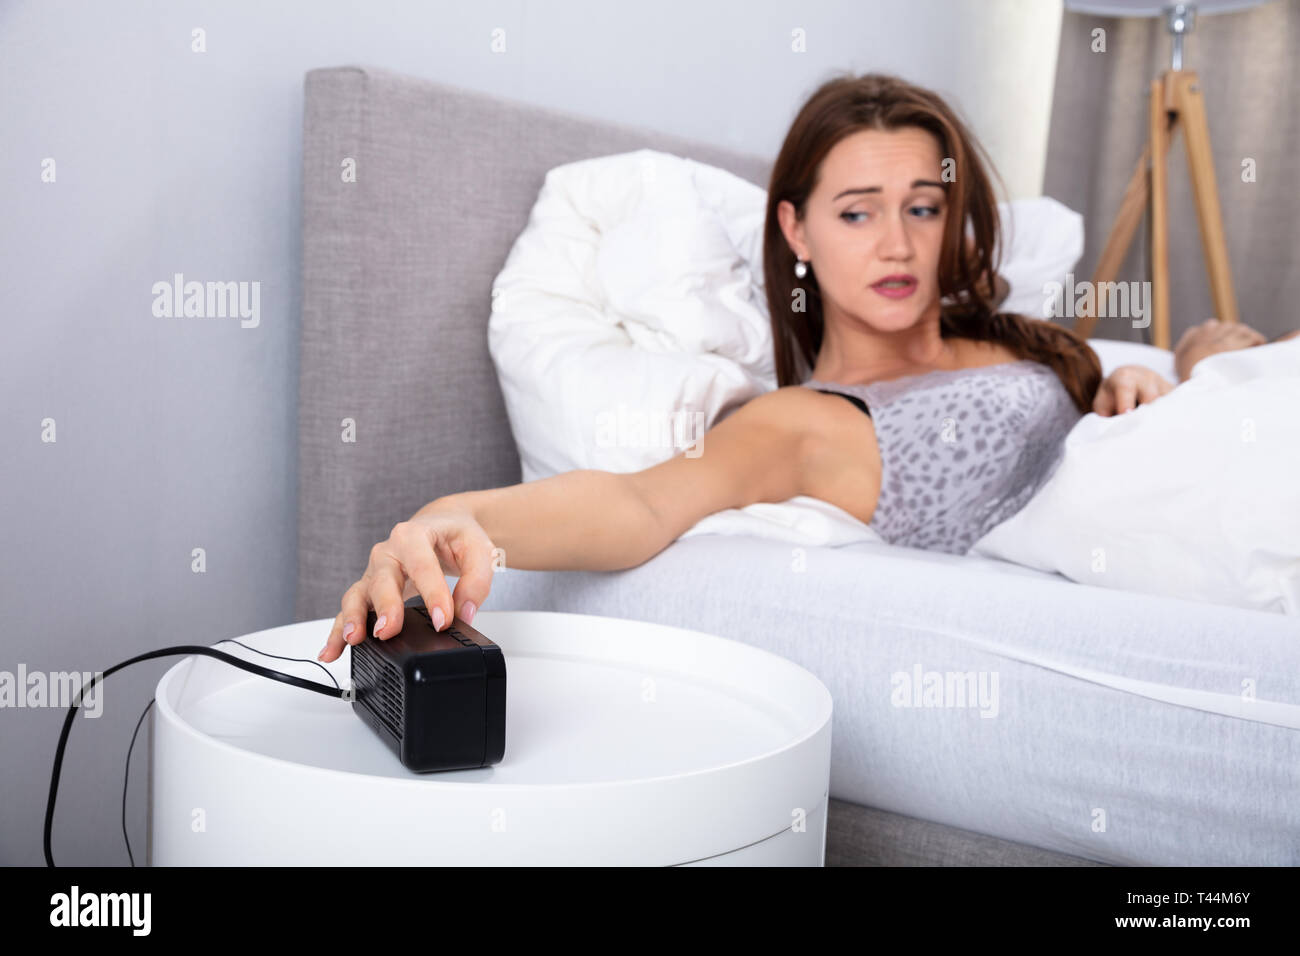 Young Woman In Bed Reaching For Snooze Button In Bedroom - Stock Image